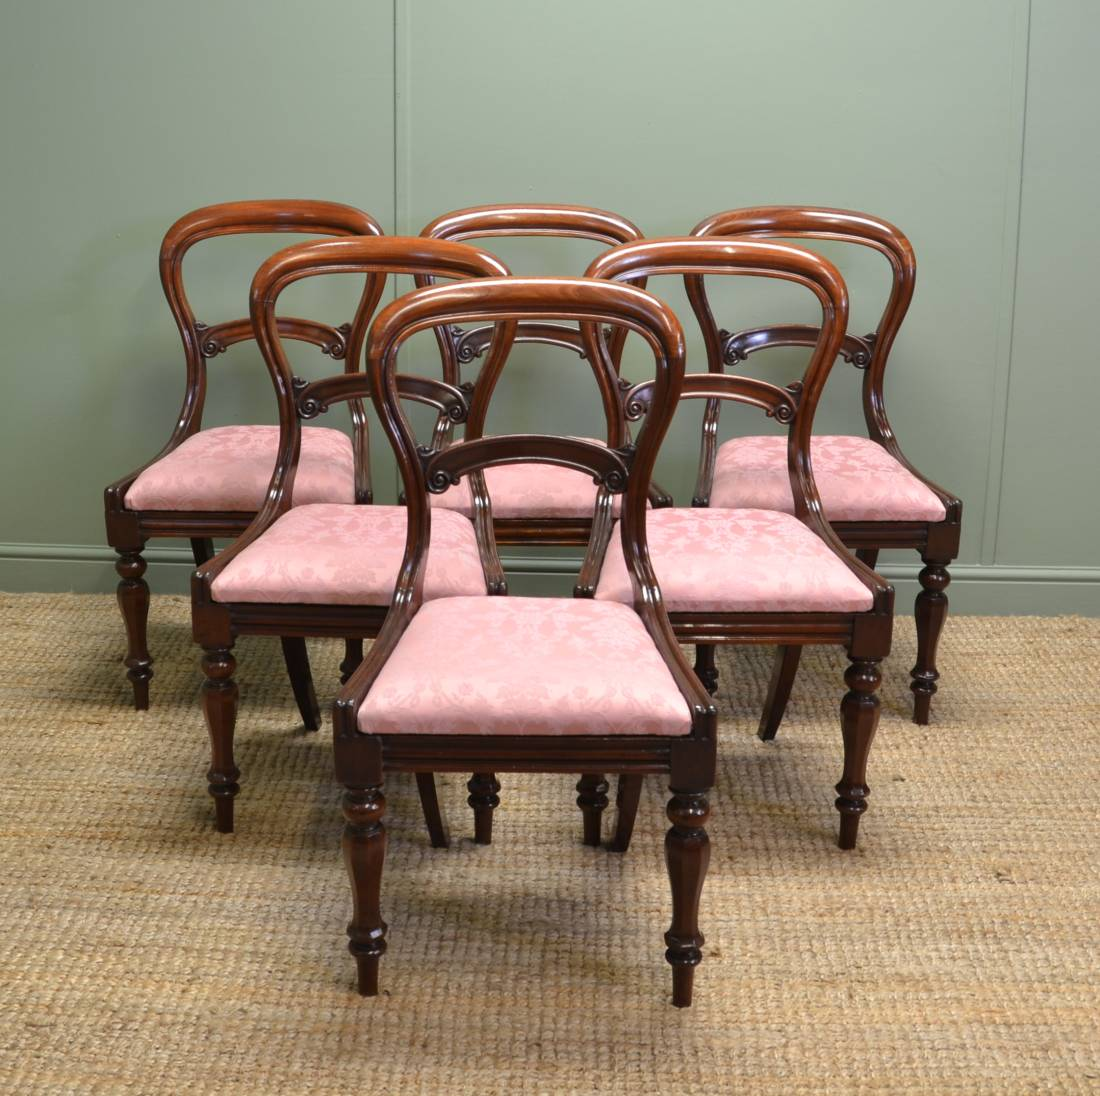 Super Quality, Set of Six, Antique Victorian Mahogany Balloon Back Chairs